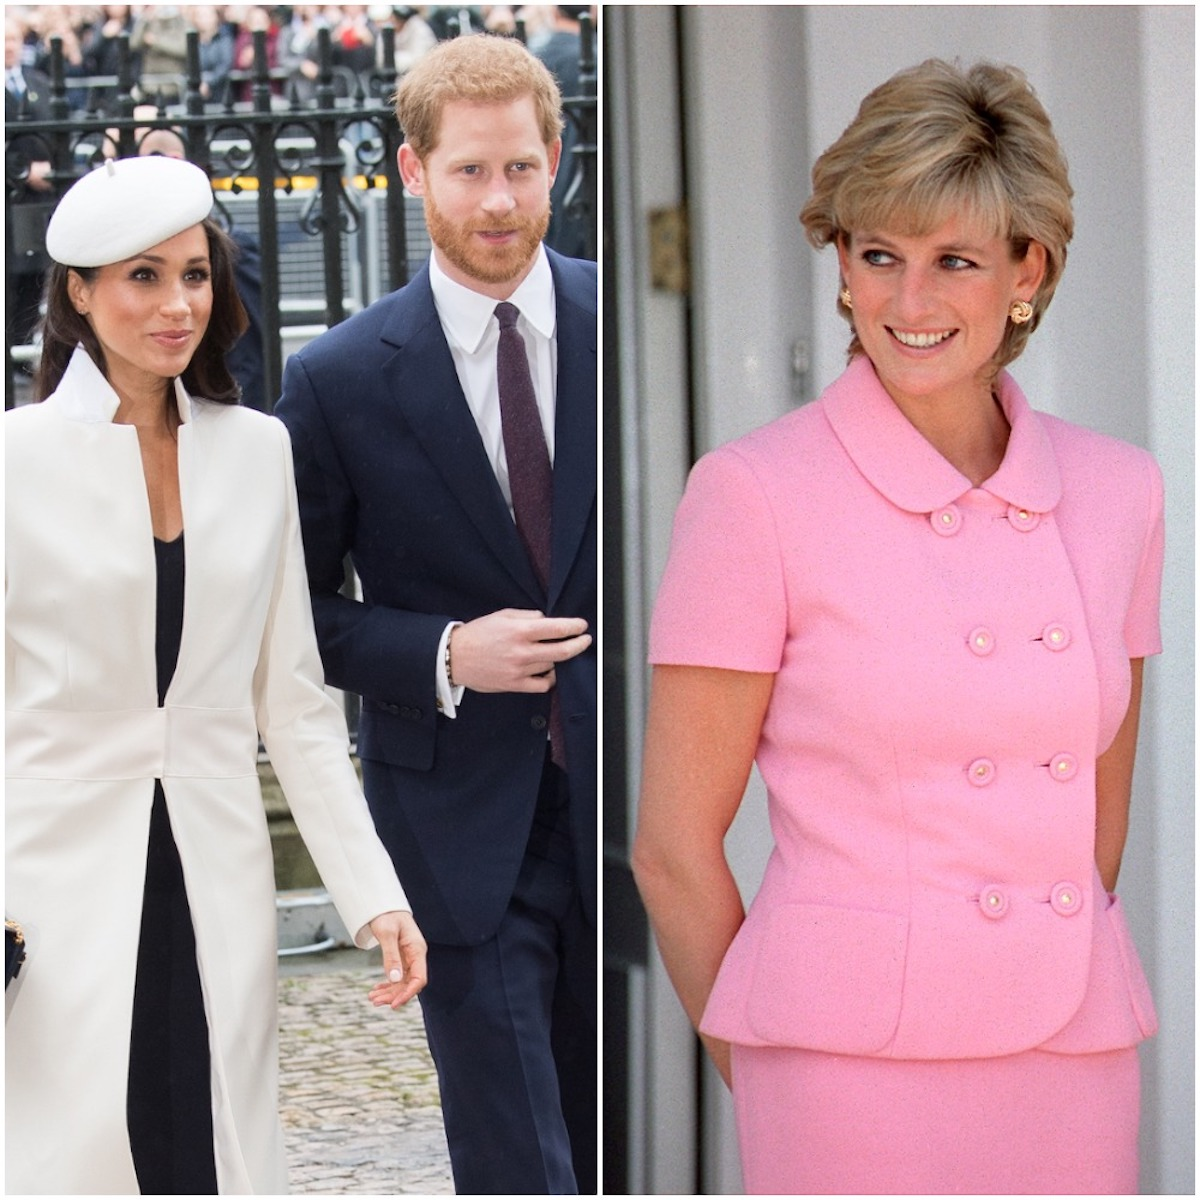 How Princess Diana Made Meghan Markle and Prince Harry's Royal Exit Possible